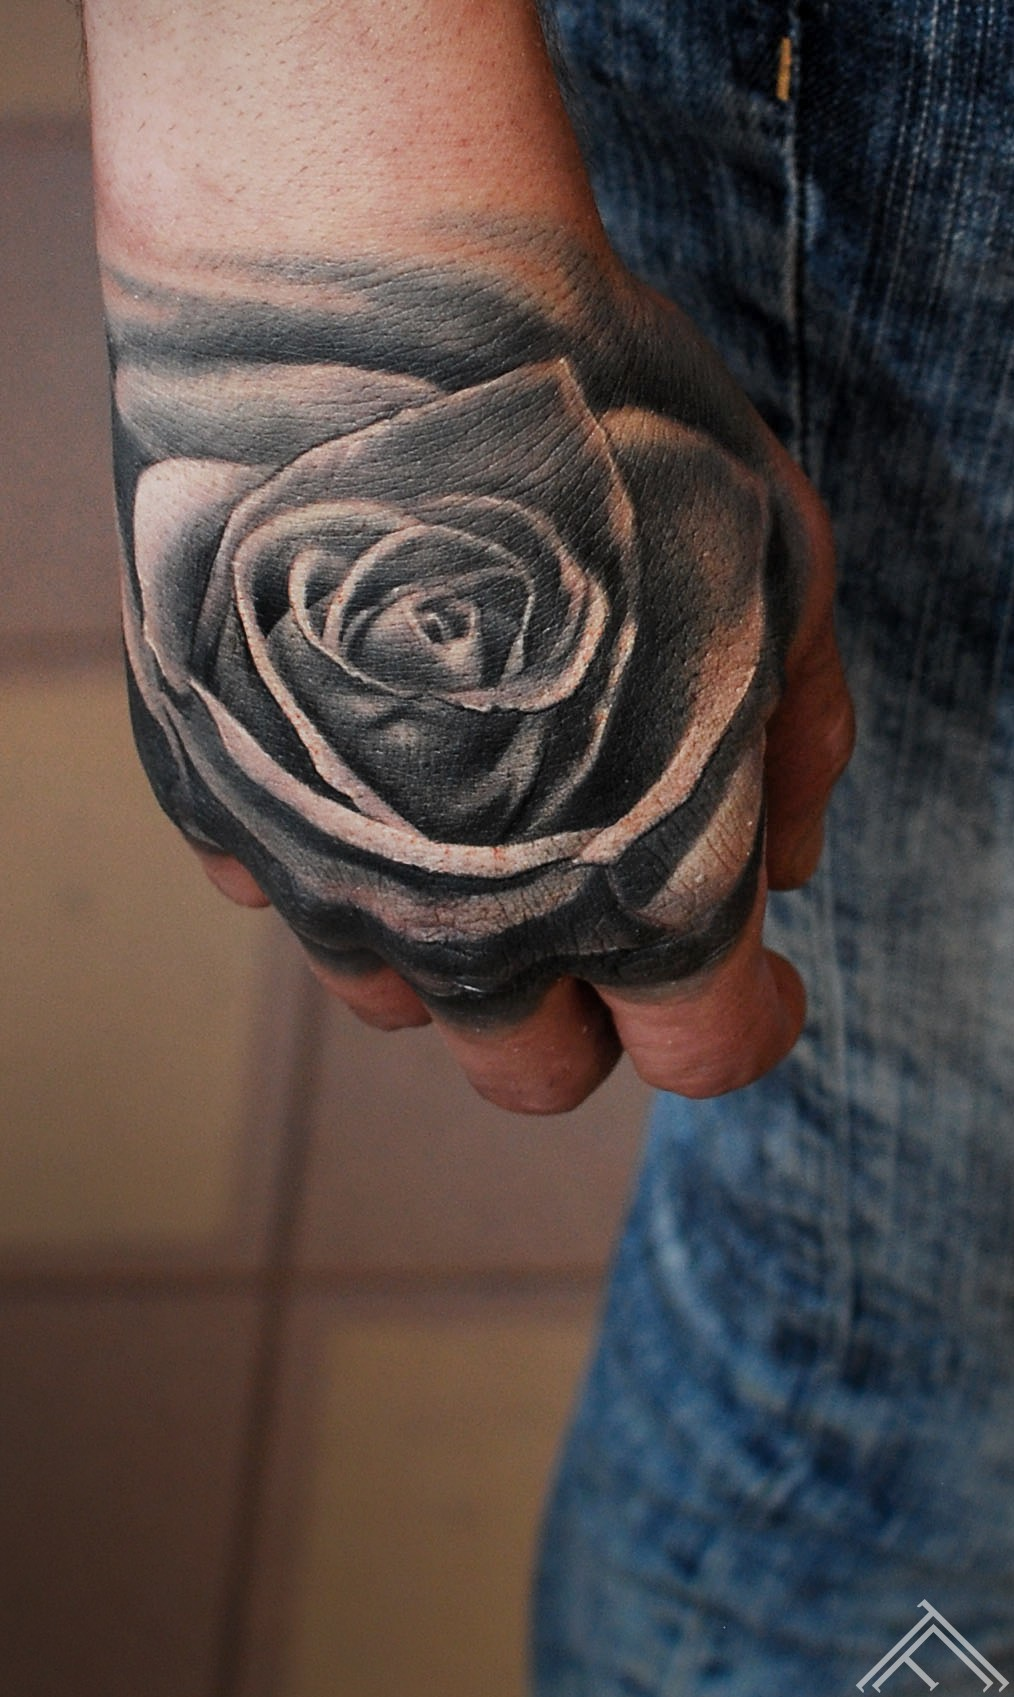 rose-tattoo-flower-handtattoo-tattoofrequency-art-marispavlo